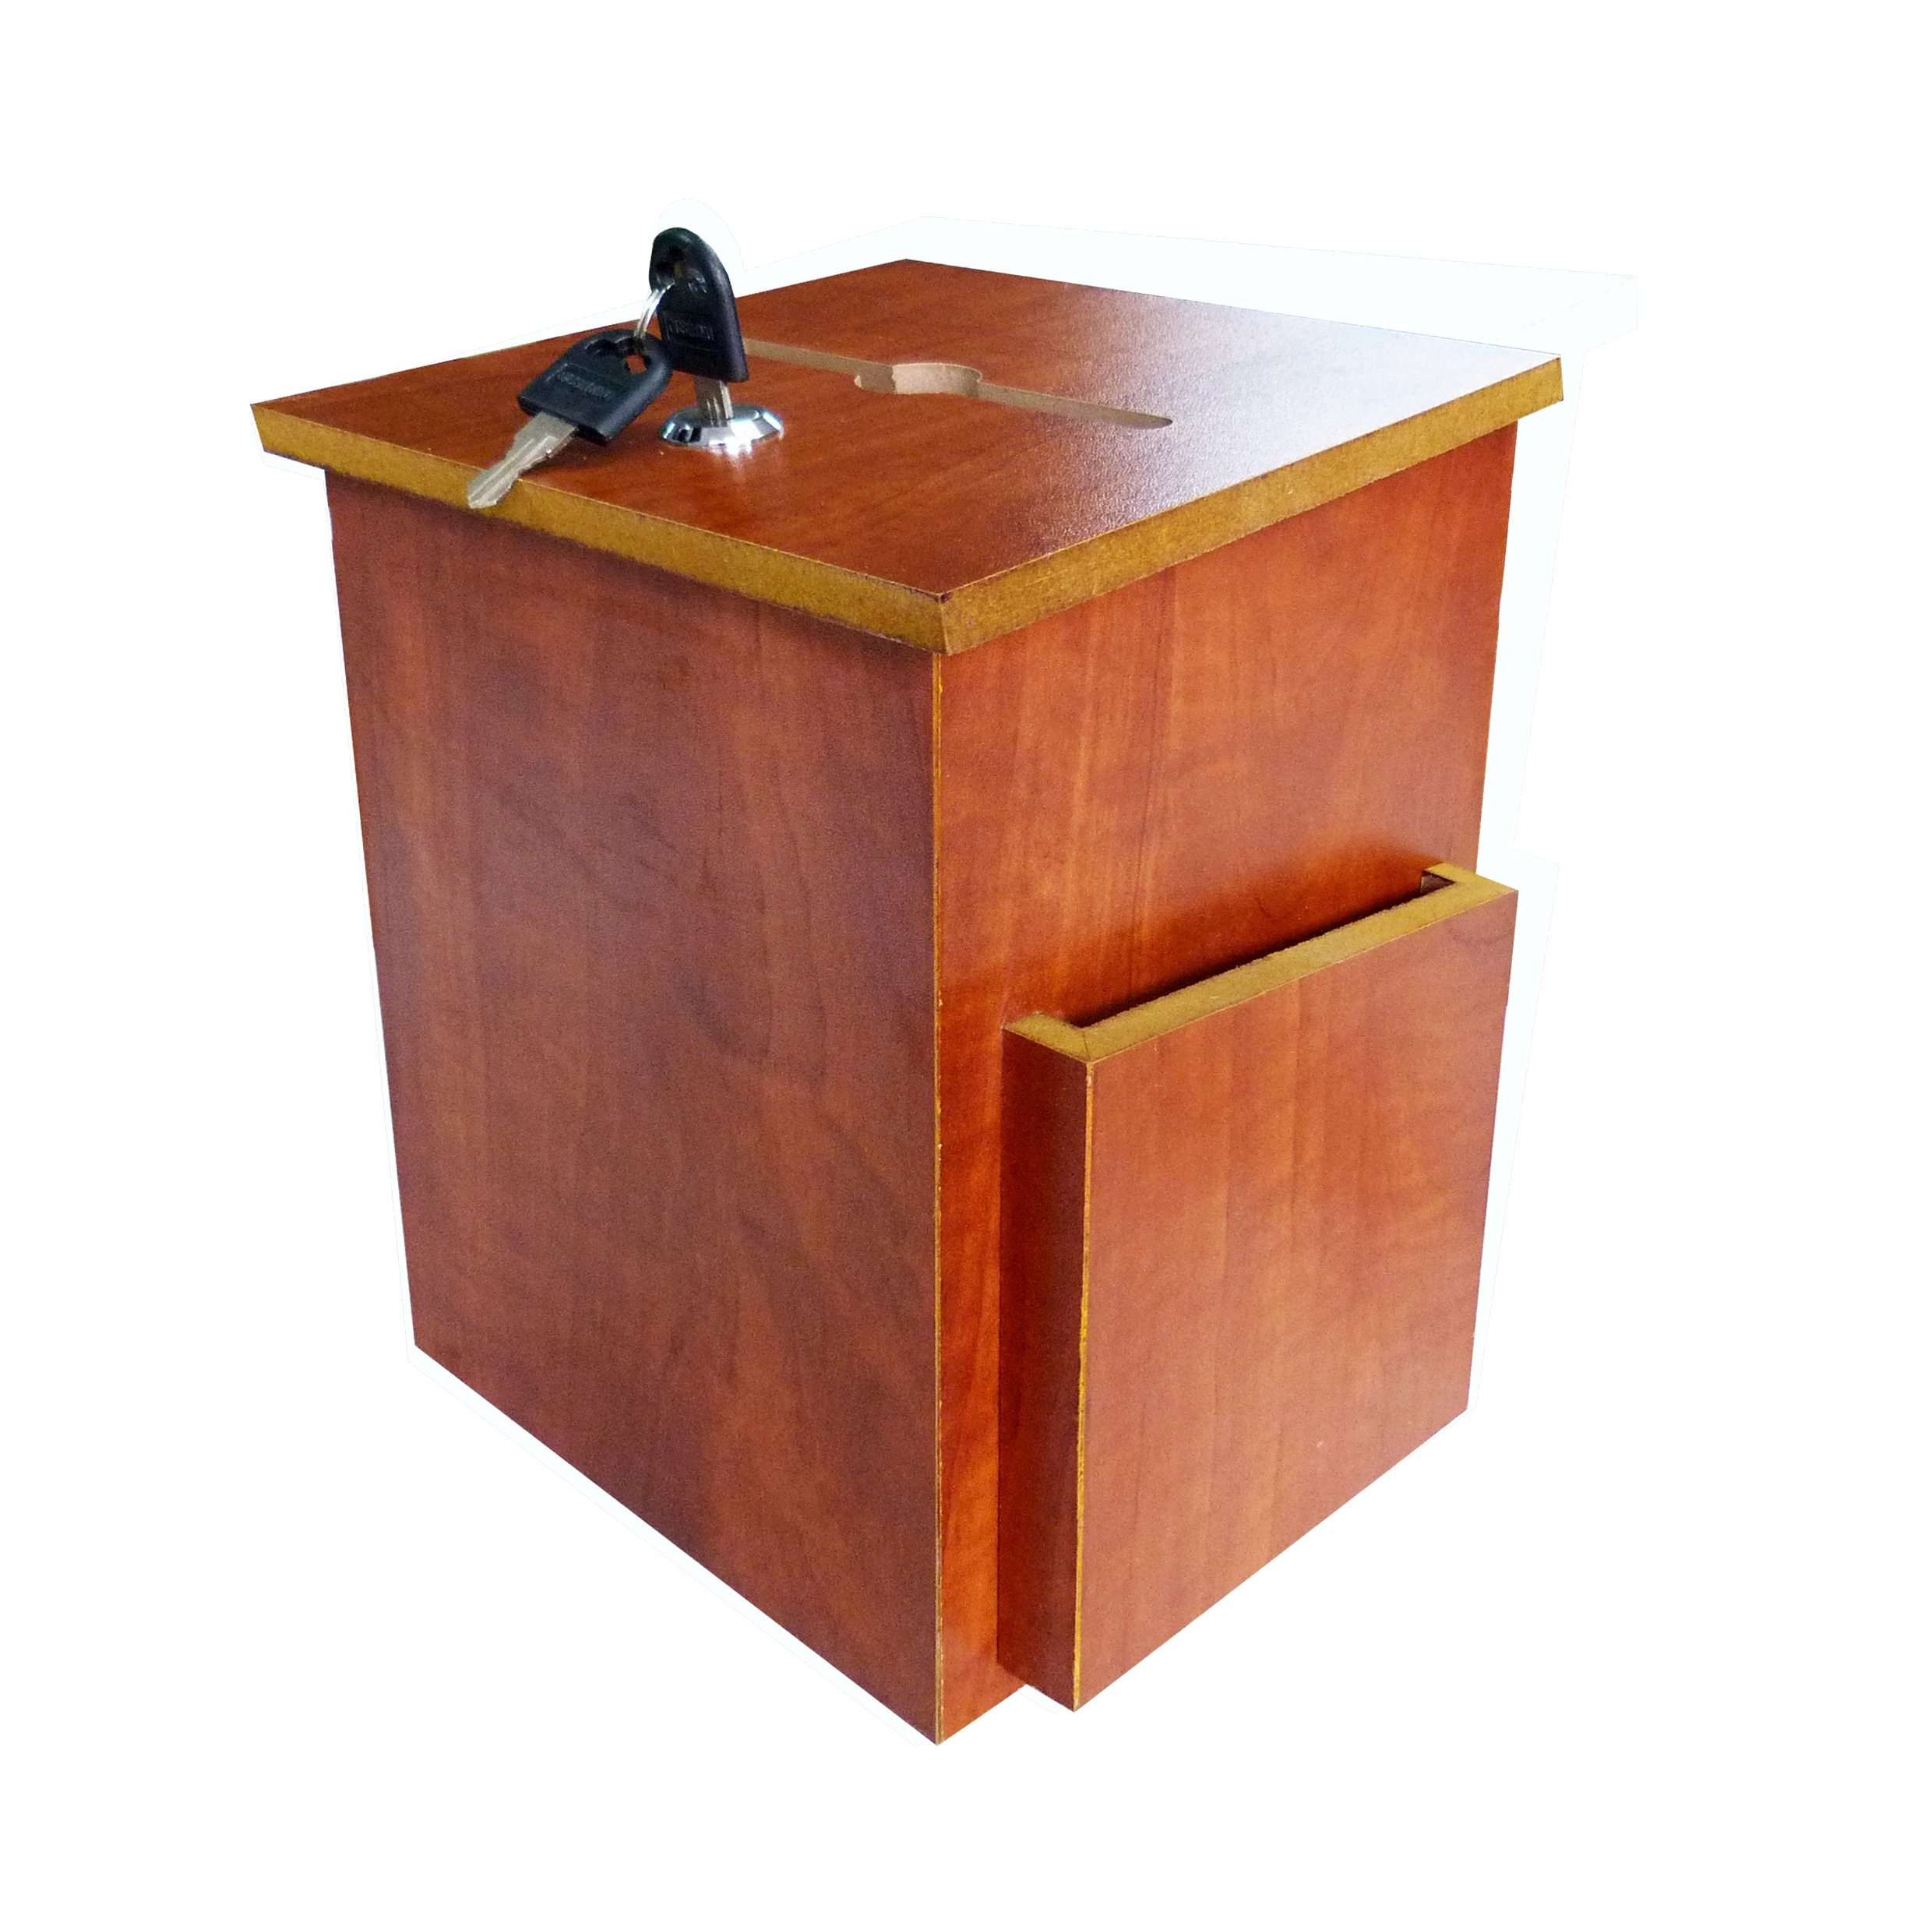 FixtureDisplays Wood Fund-raising Box Comment Collection Suggestion Box Donnation Charity Box 11463